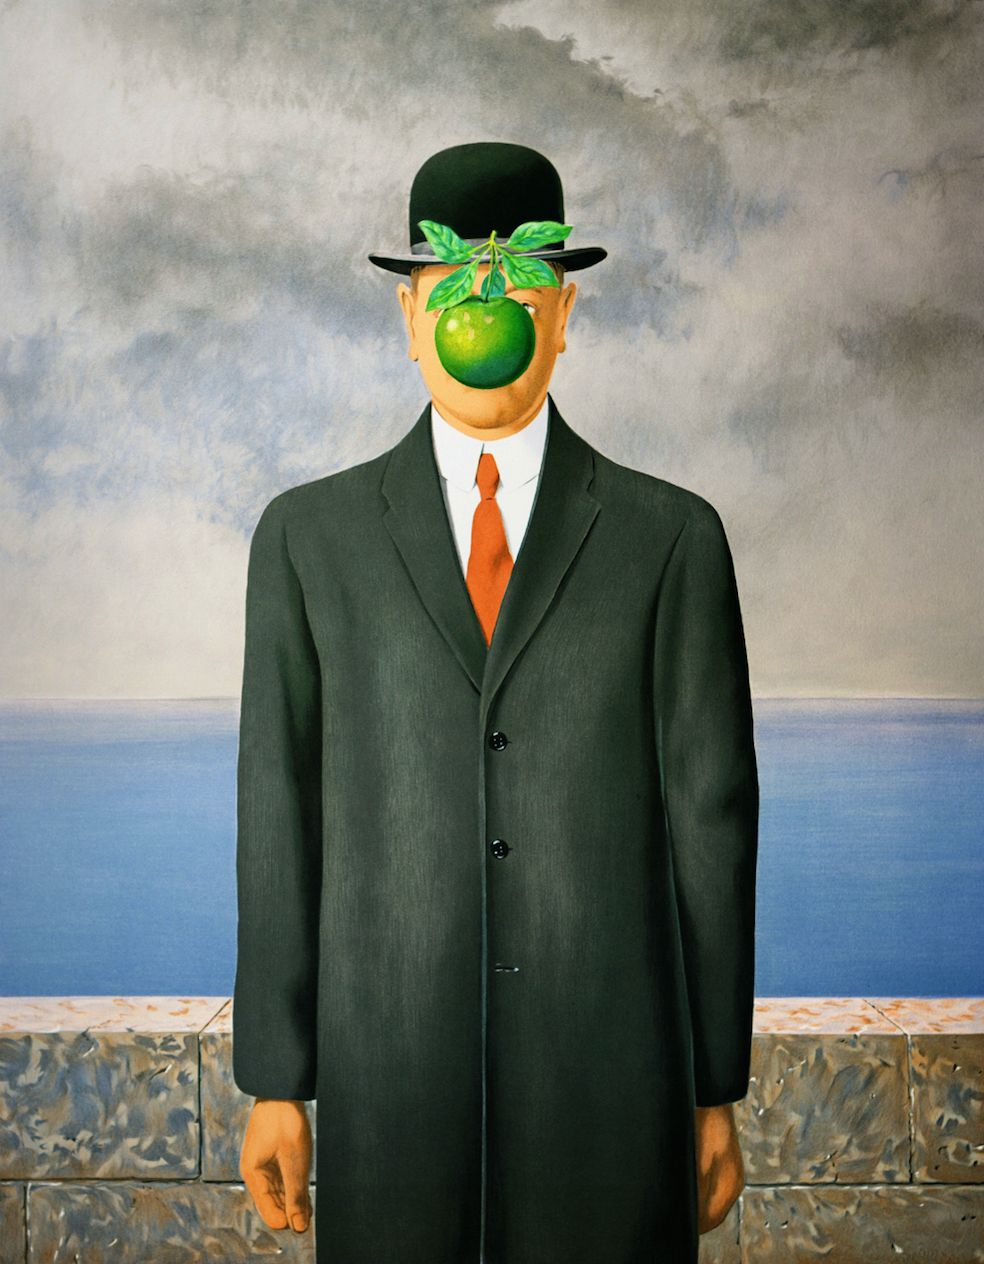 René Magritte | Biography | Art collection online for sale on Kooness